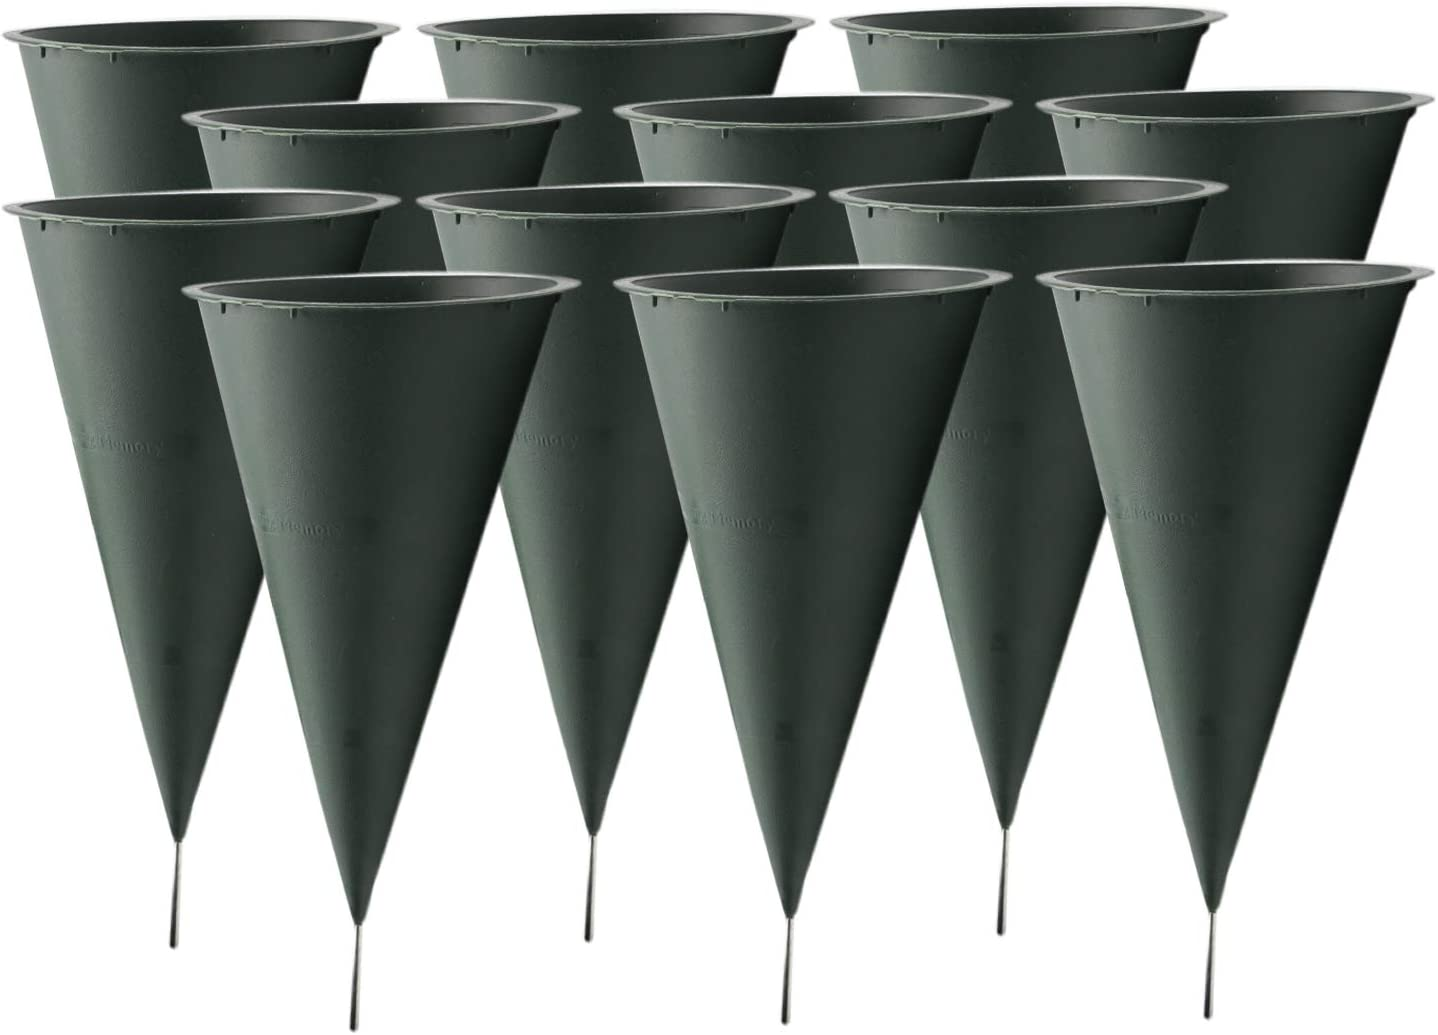 Royal Imports Cemetery Flower Vase Cone for Graveside Memorial with Metal Stake Large 10.75 X 4.75 inch – 12 Pk